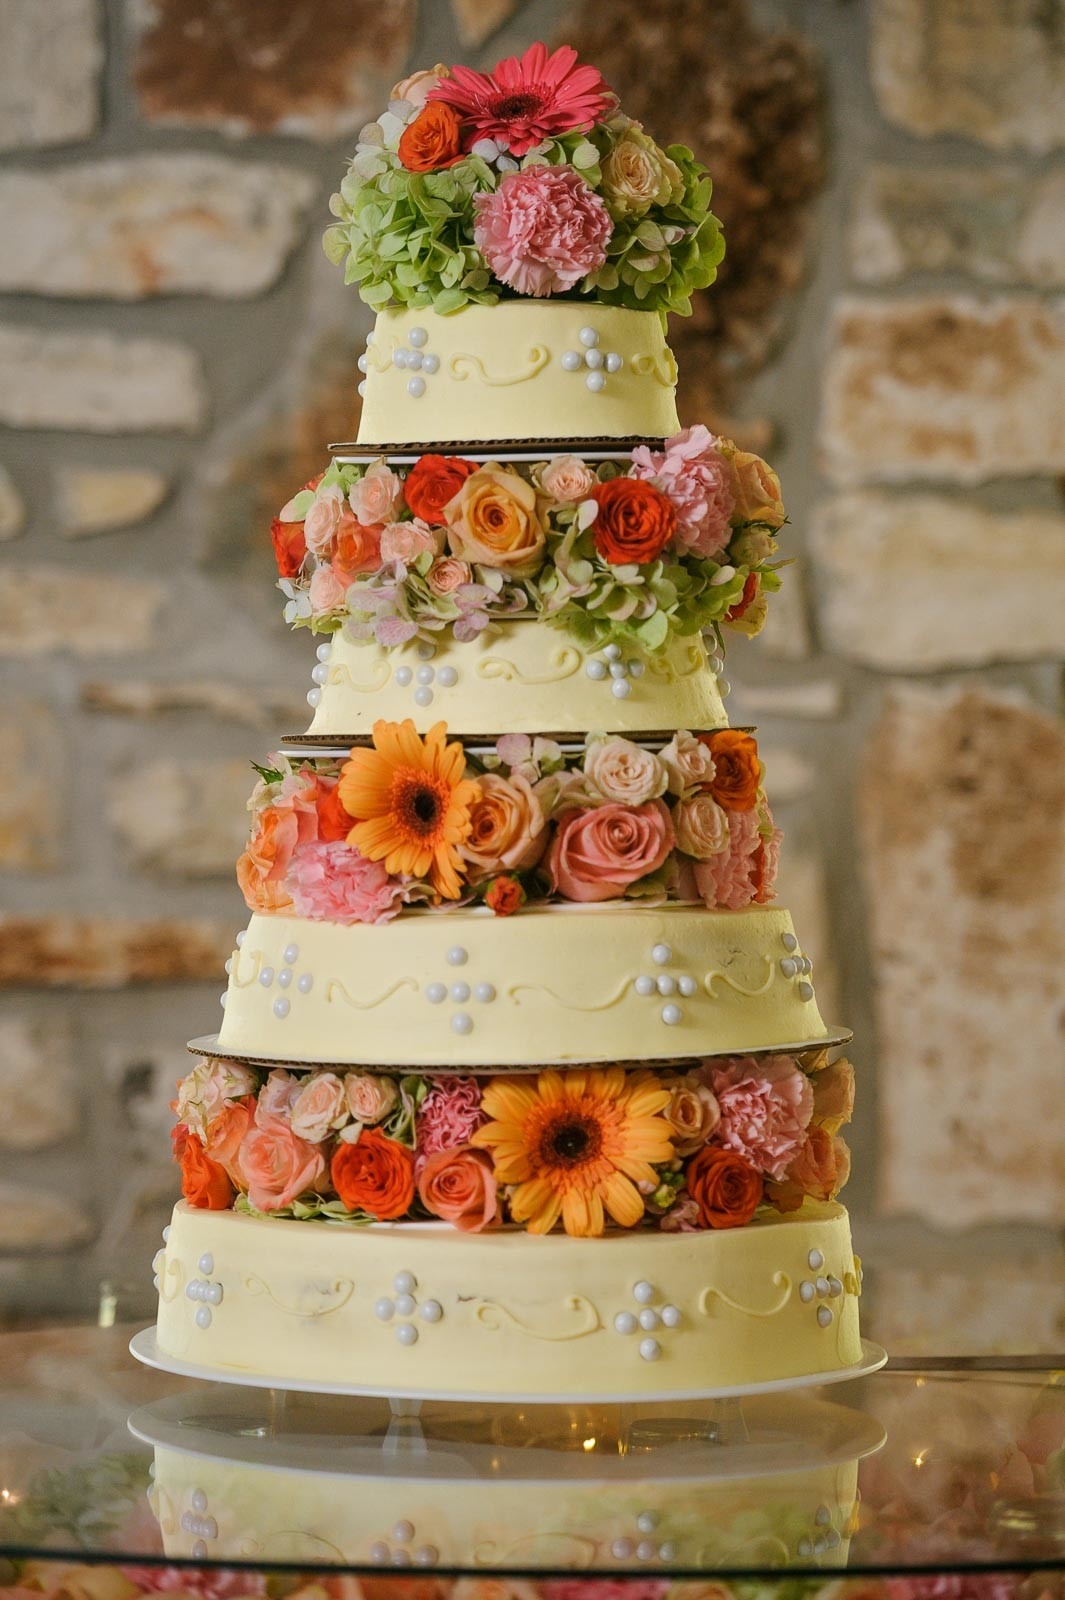 Featured Wedding Cakes - Wedding Cake Bakers - Cake Bakery - Cake Highlights - Austin Wedding Photographers -Nancy and Jaime Wedding